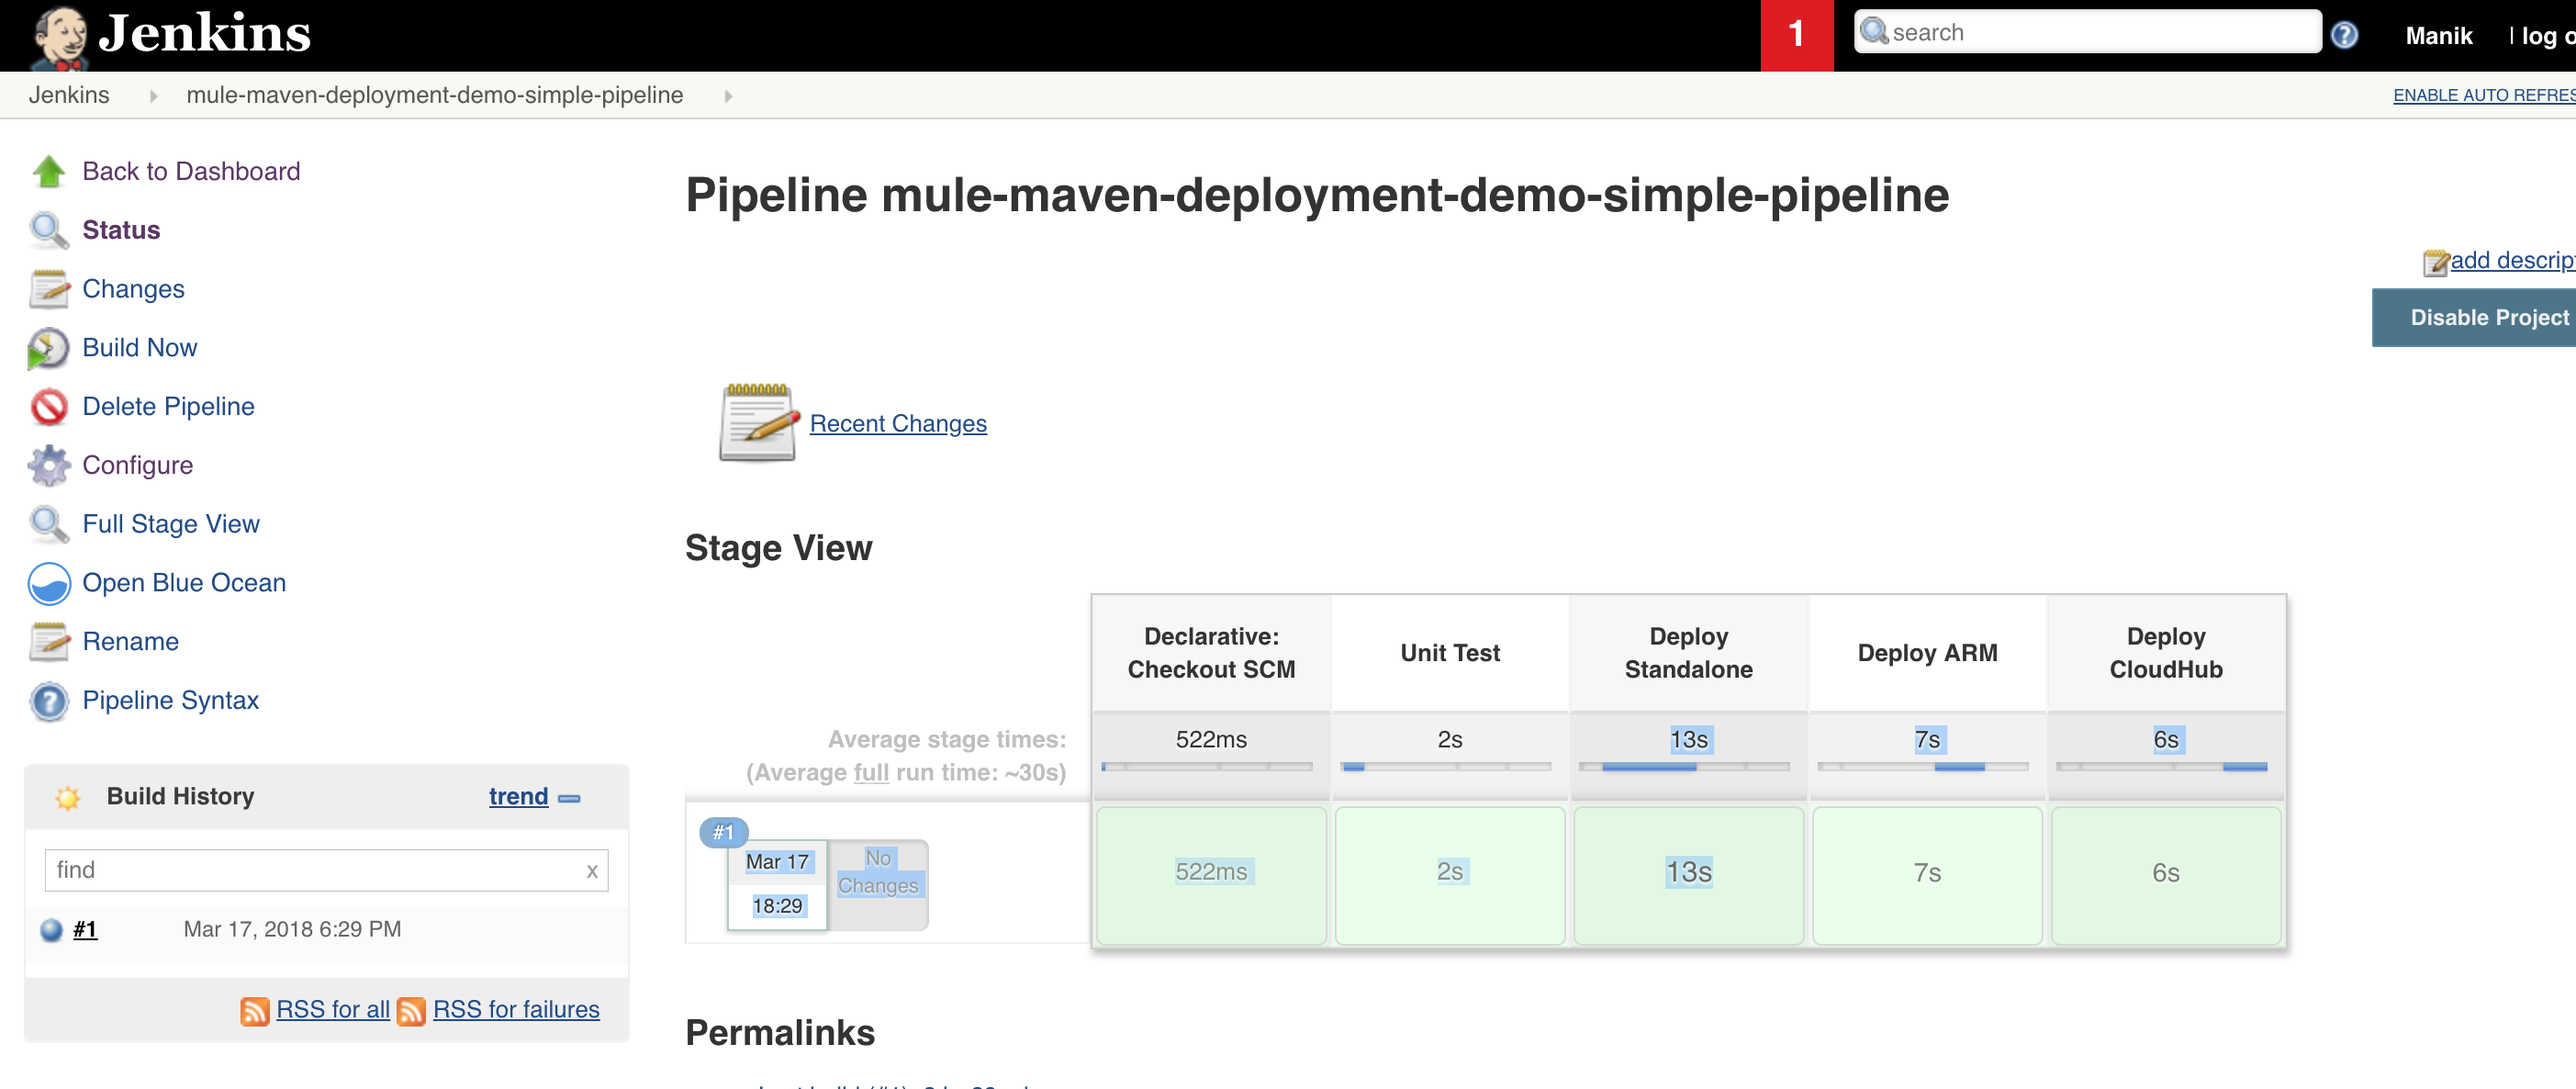 How to deploy a Mule application with a Maven and Jenkins pipeline